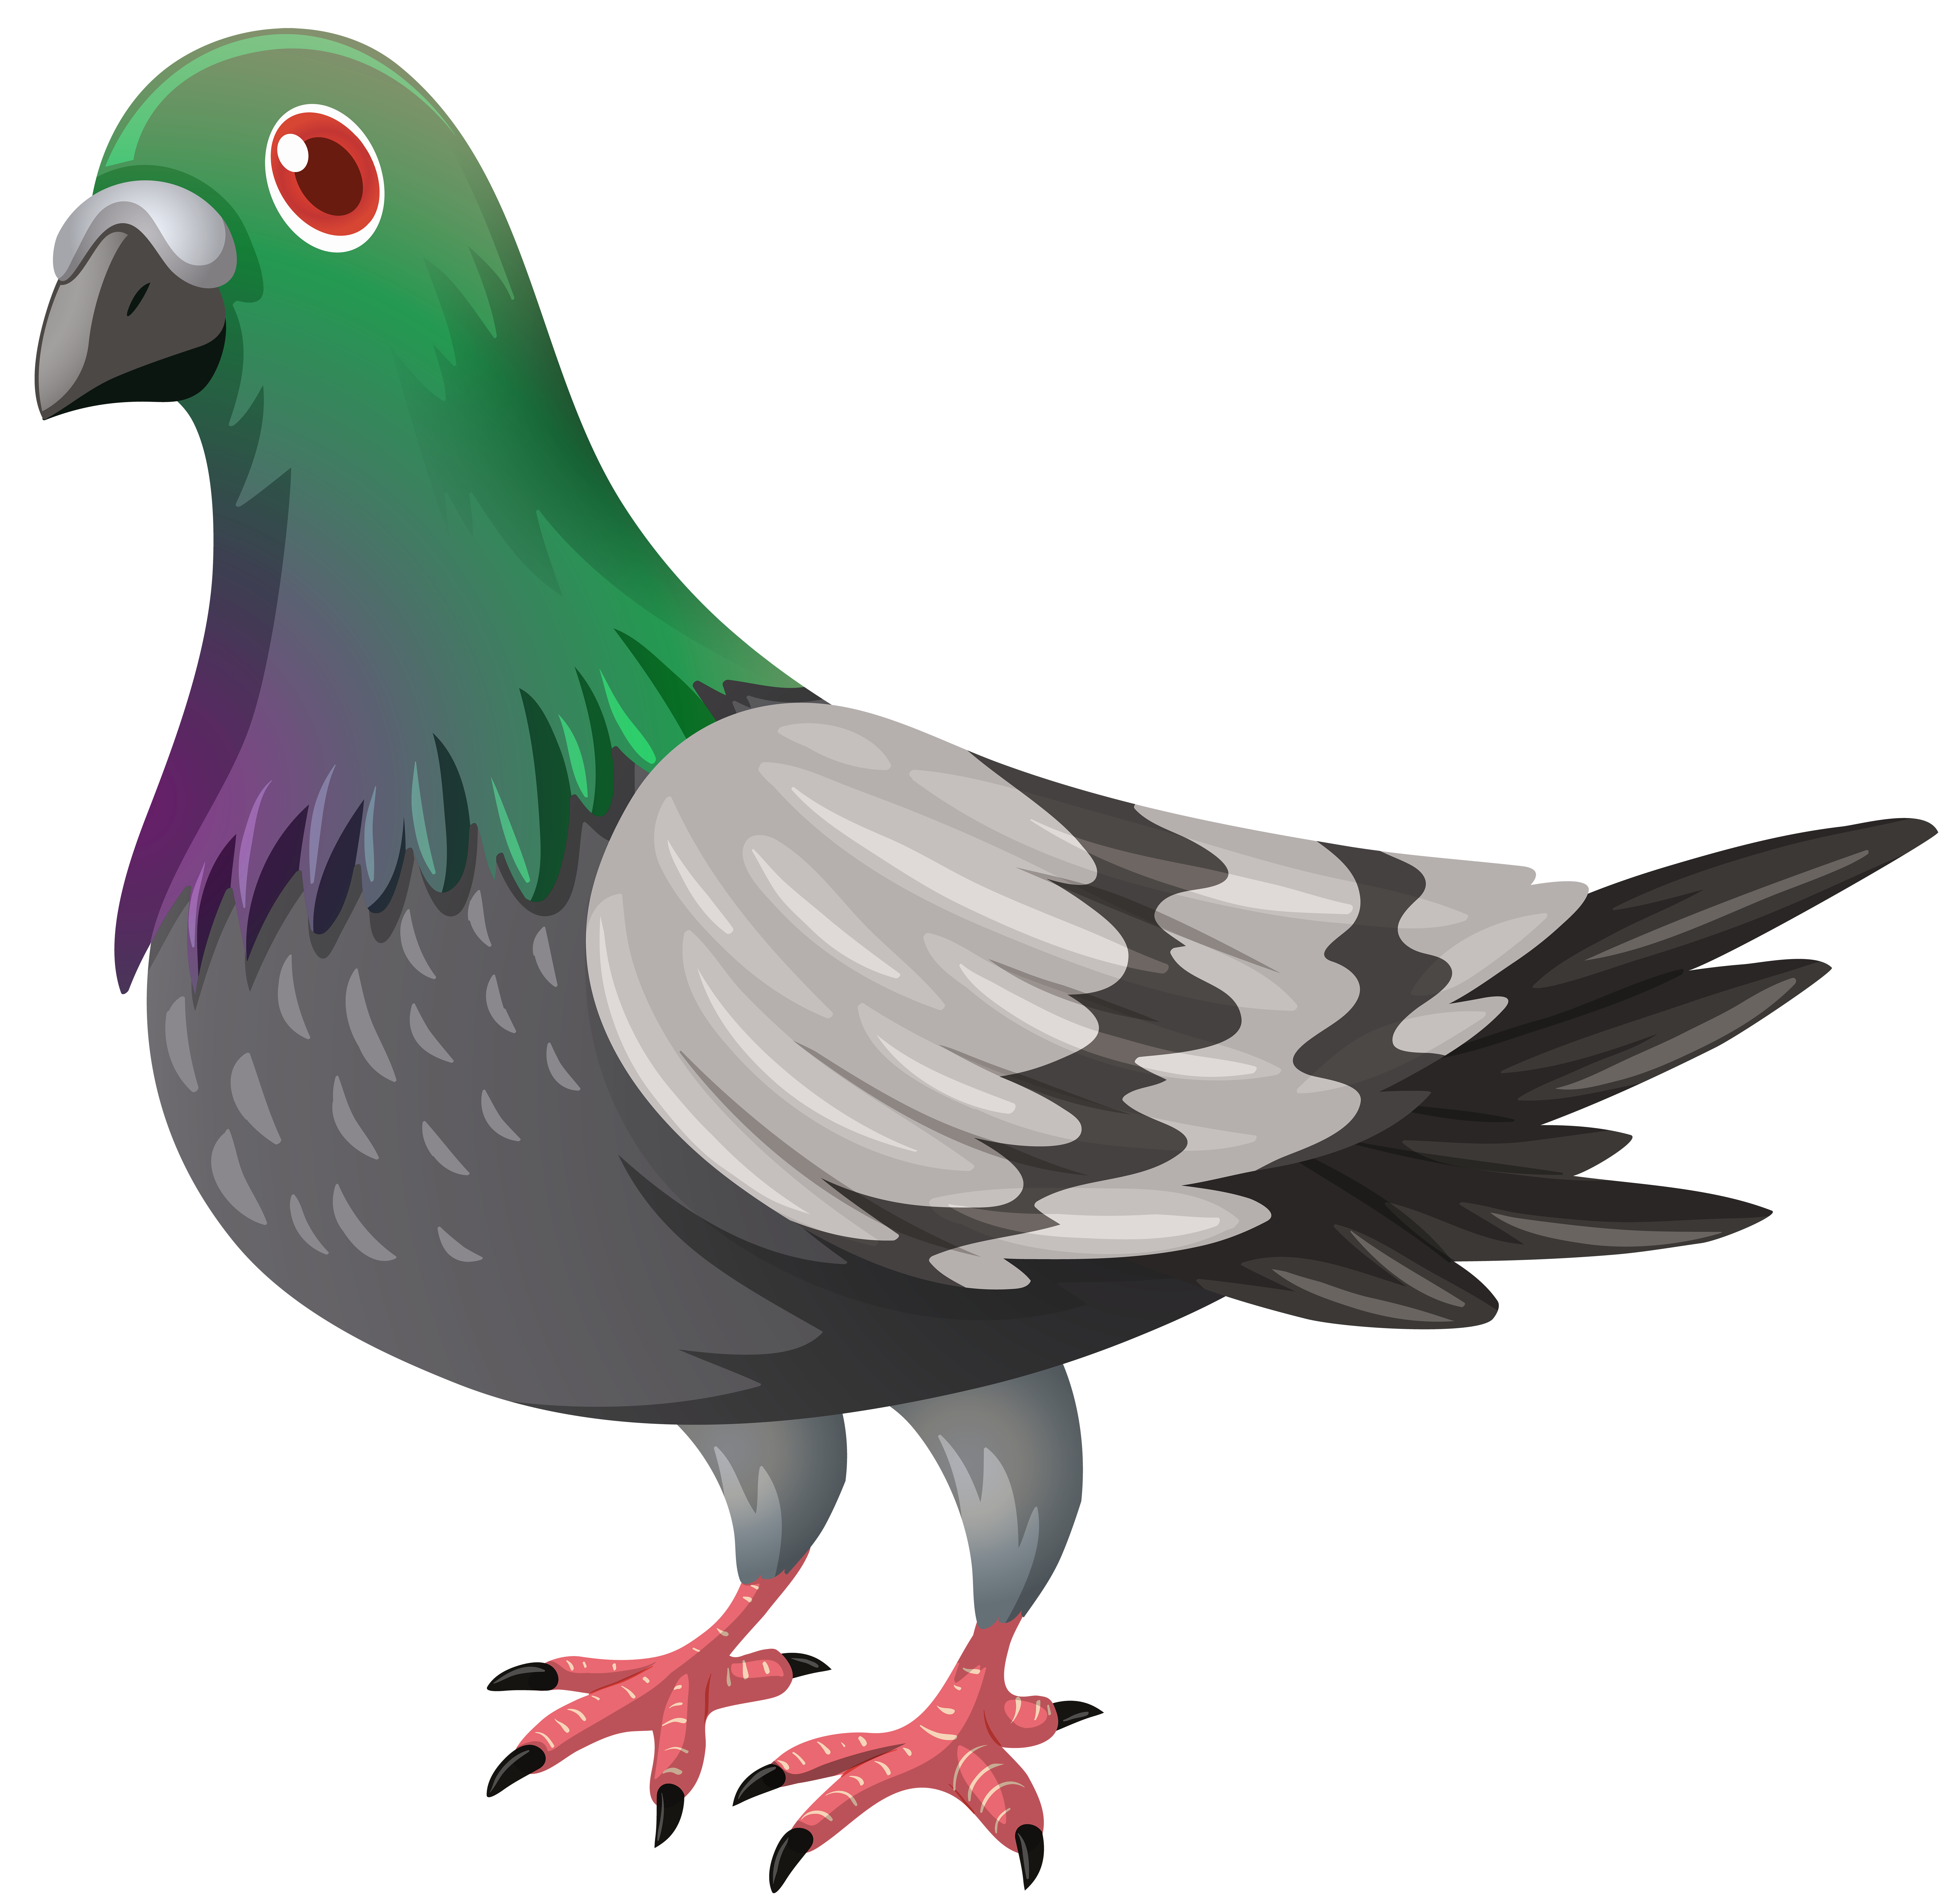 Peigin clipart jpg black and white Pigeon Transparent PNG Image | Gallery Yopriceville - High-Quality ... jpg black and white